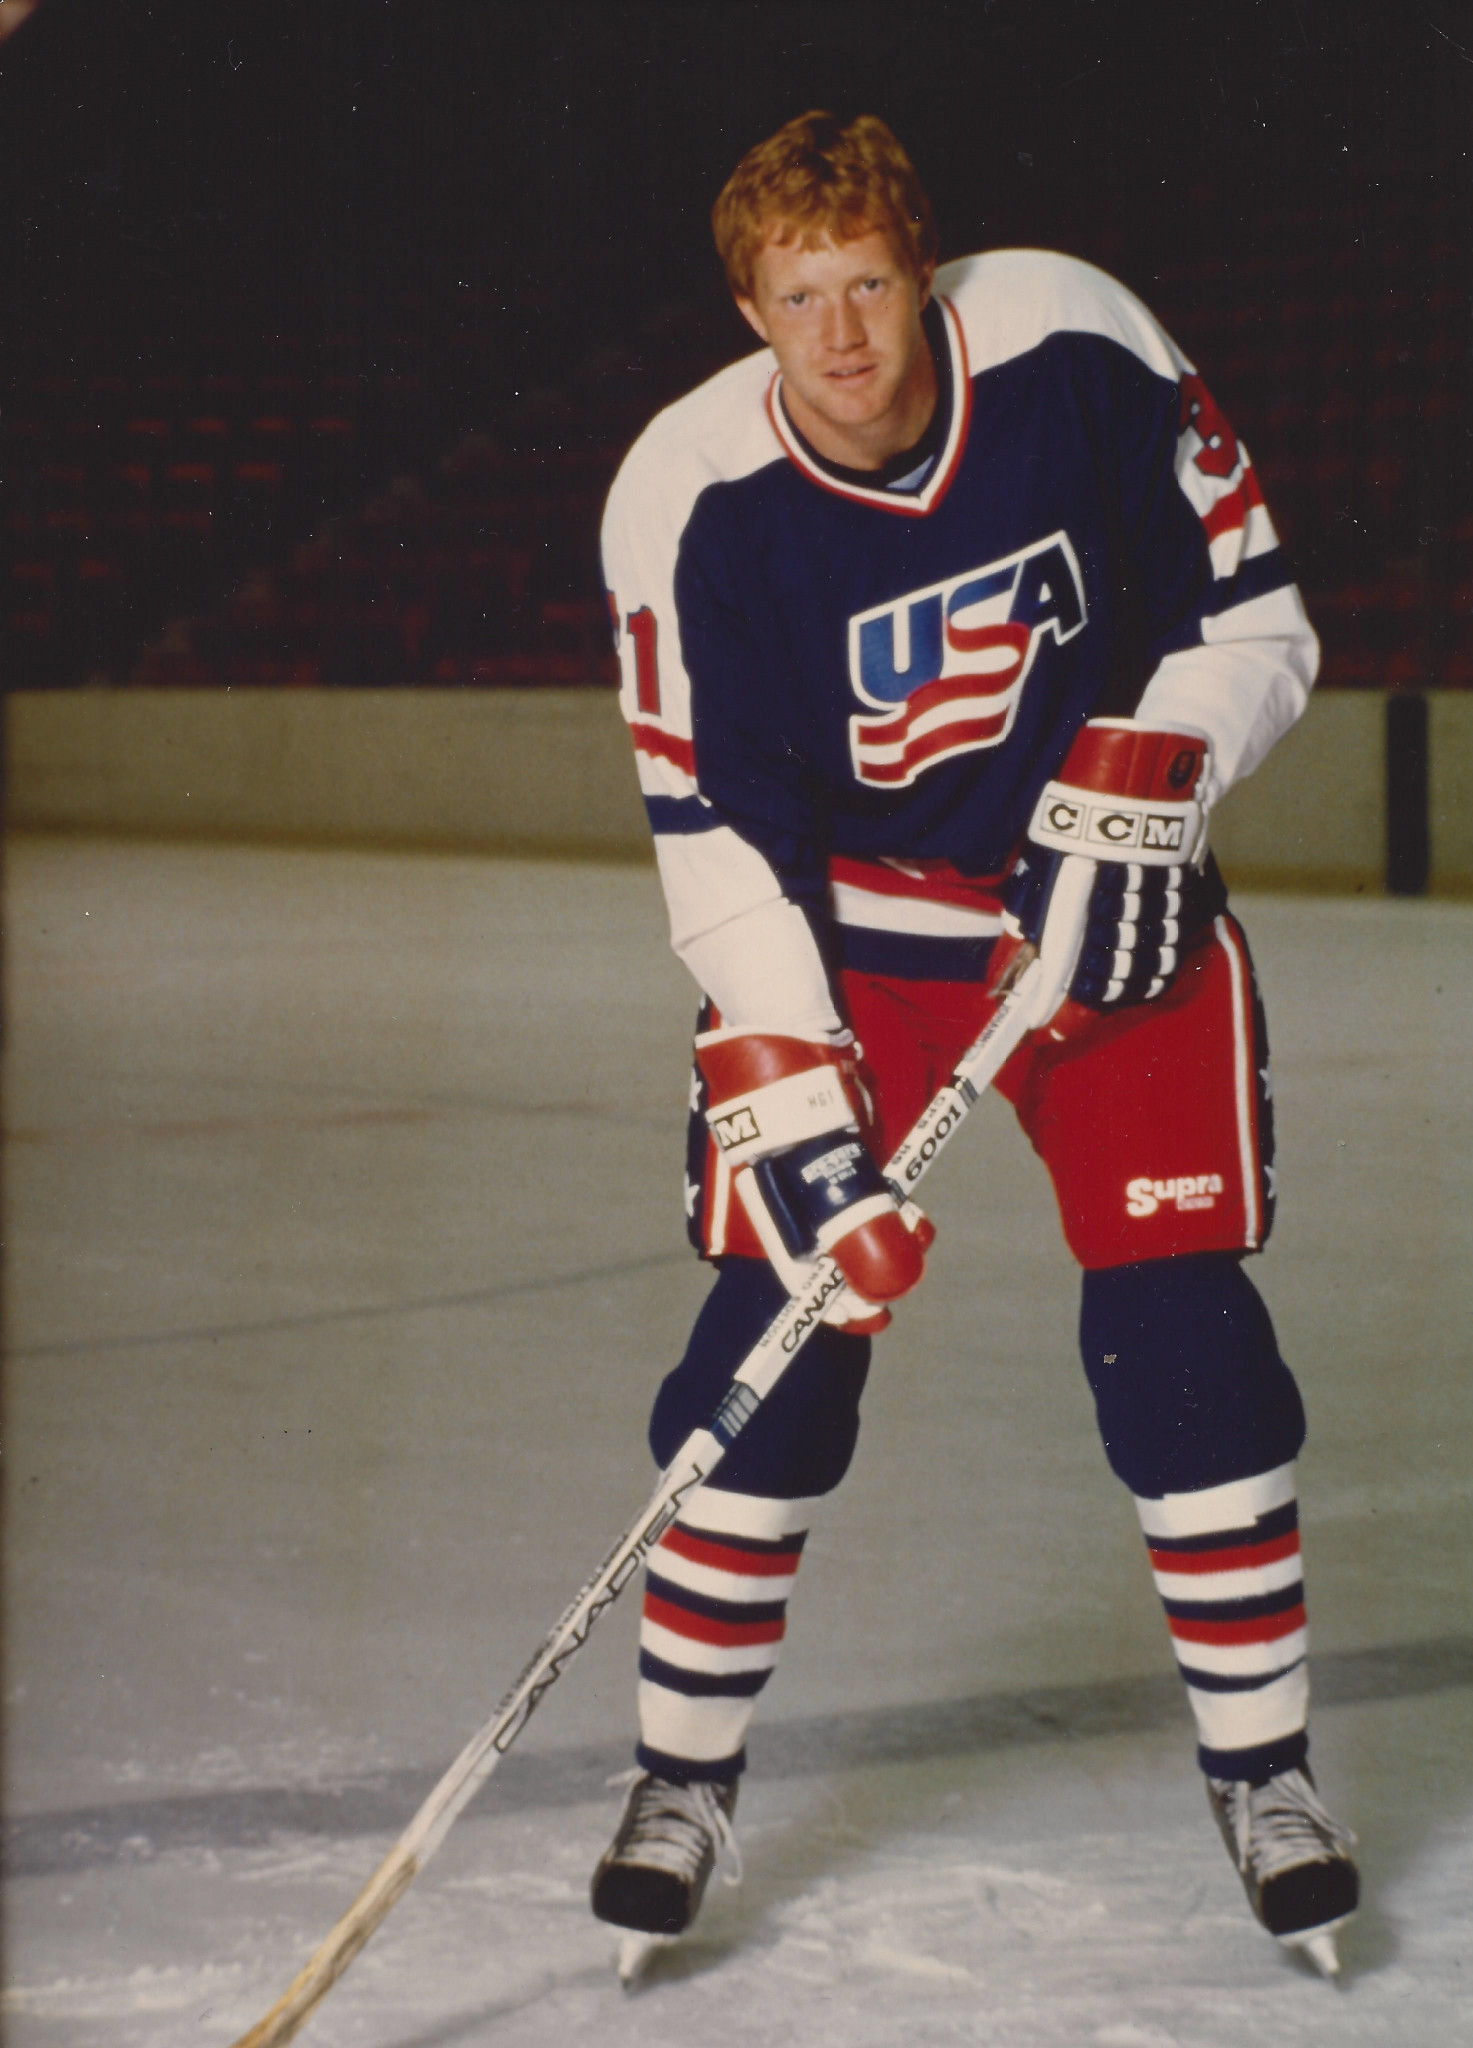 Jim Johannson had represented America at the 1988 and 1992 Winter Olympic Games in Calgary and Albertville ©Twitter